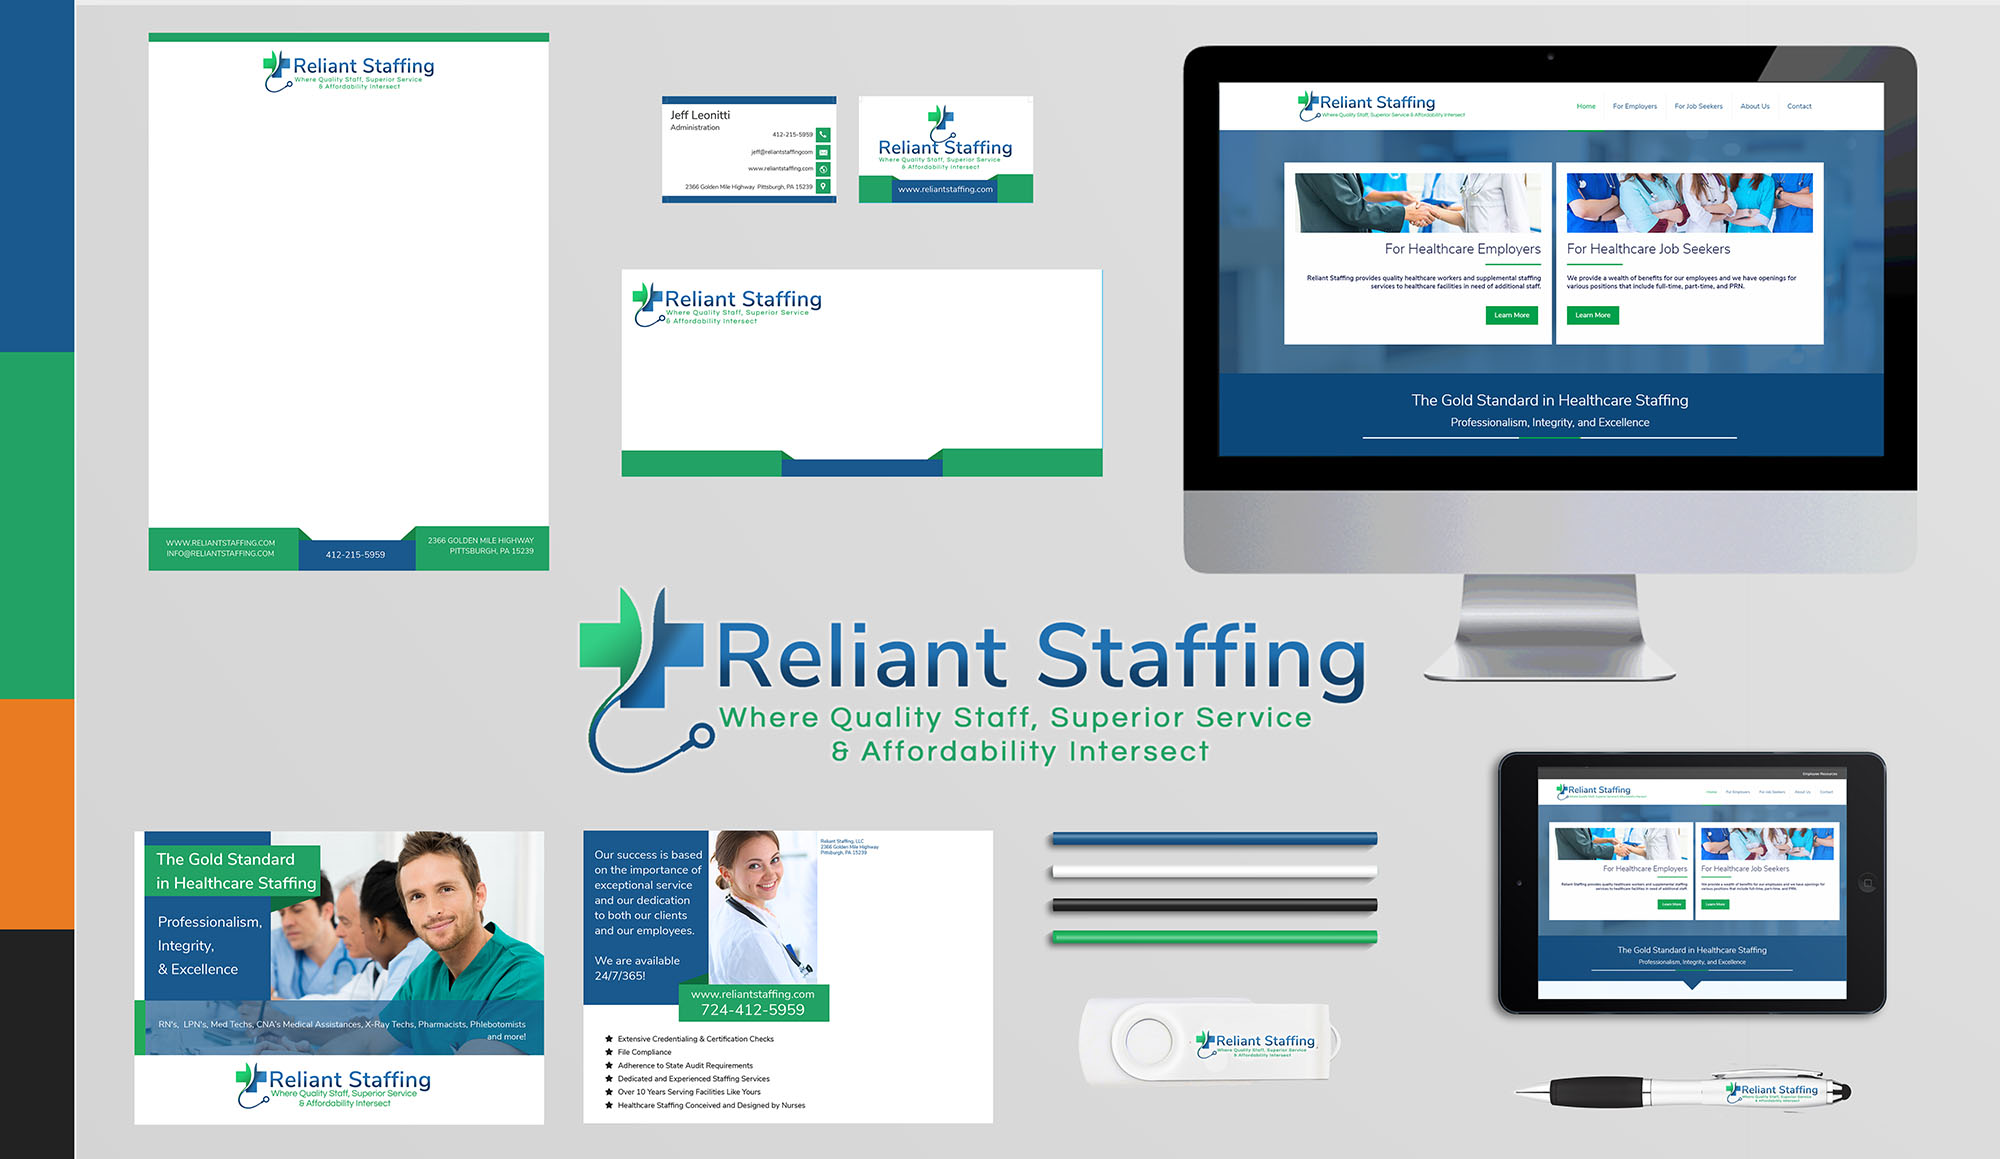 Reliant Staffing - Branding Board